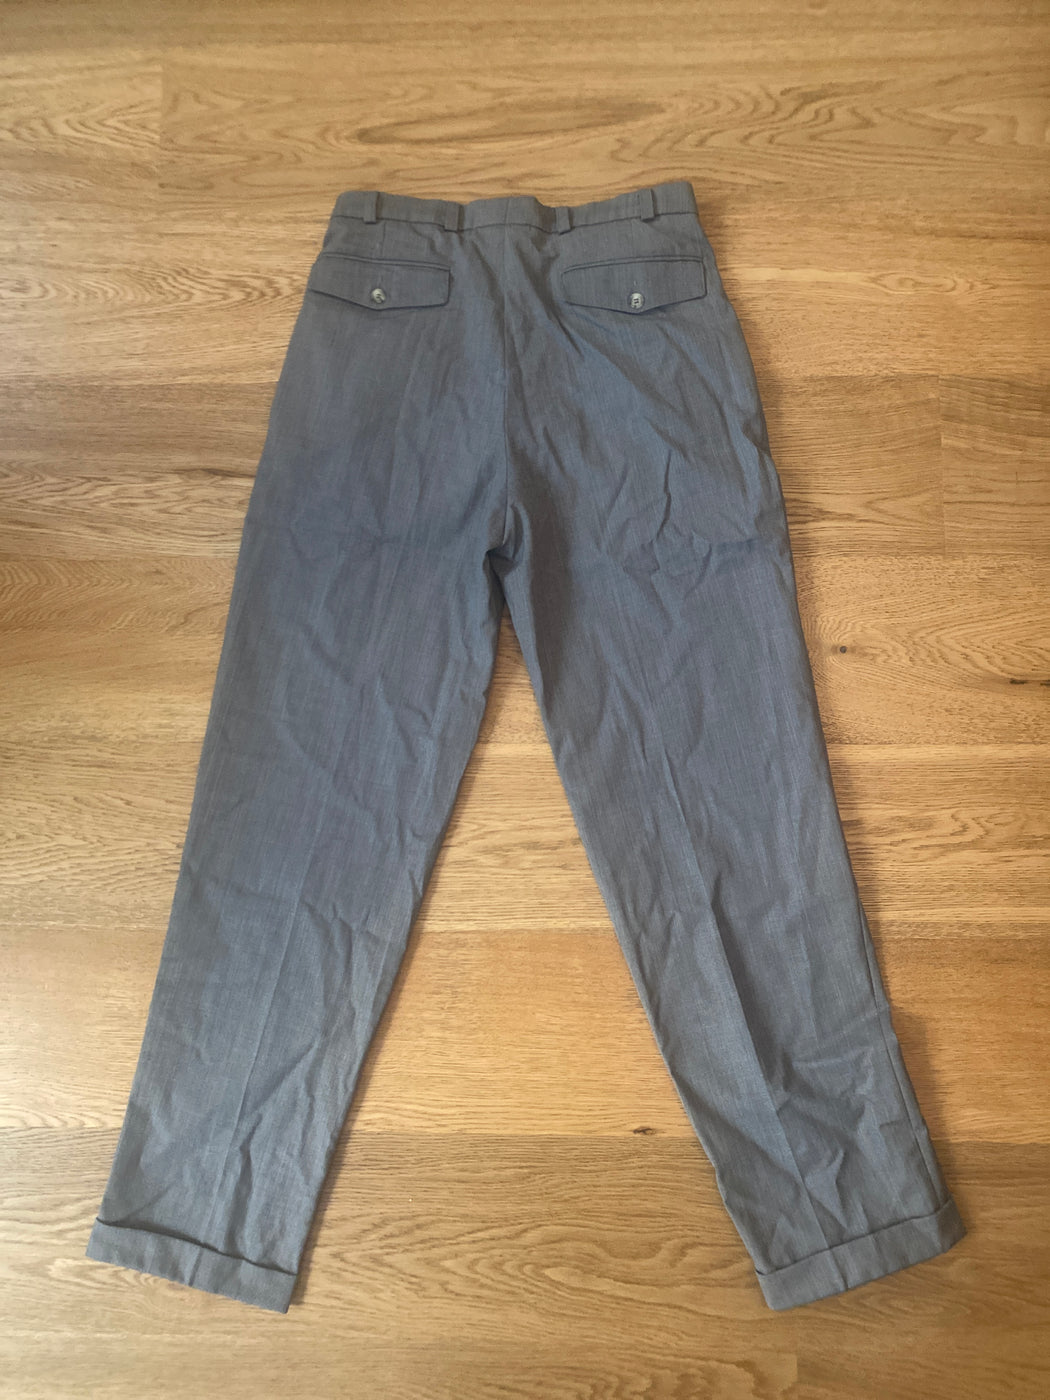 Concrete Wool Mix Vintage High Waist Pants Pleated